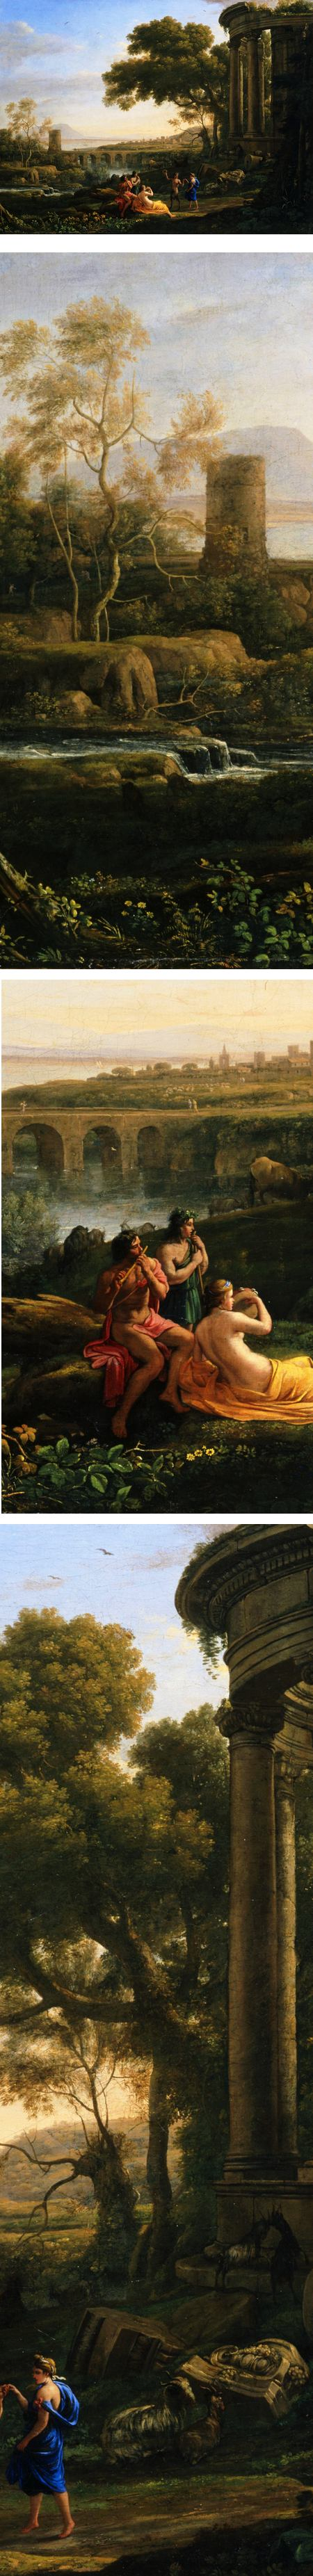 Landscape with Nymph and Satyr Dancing, Claude Lorrain